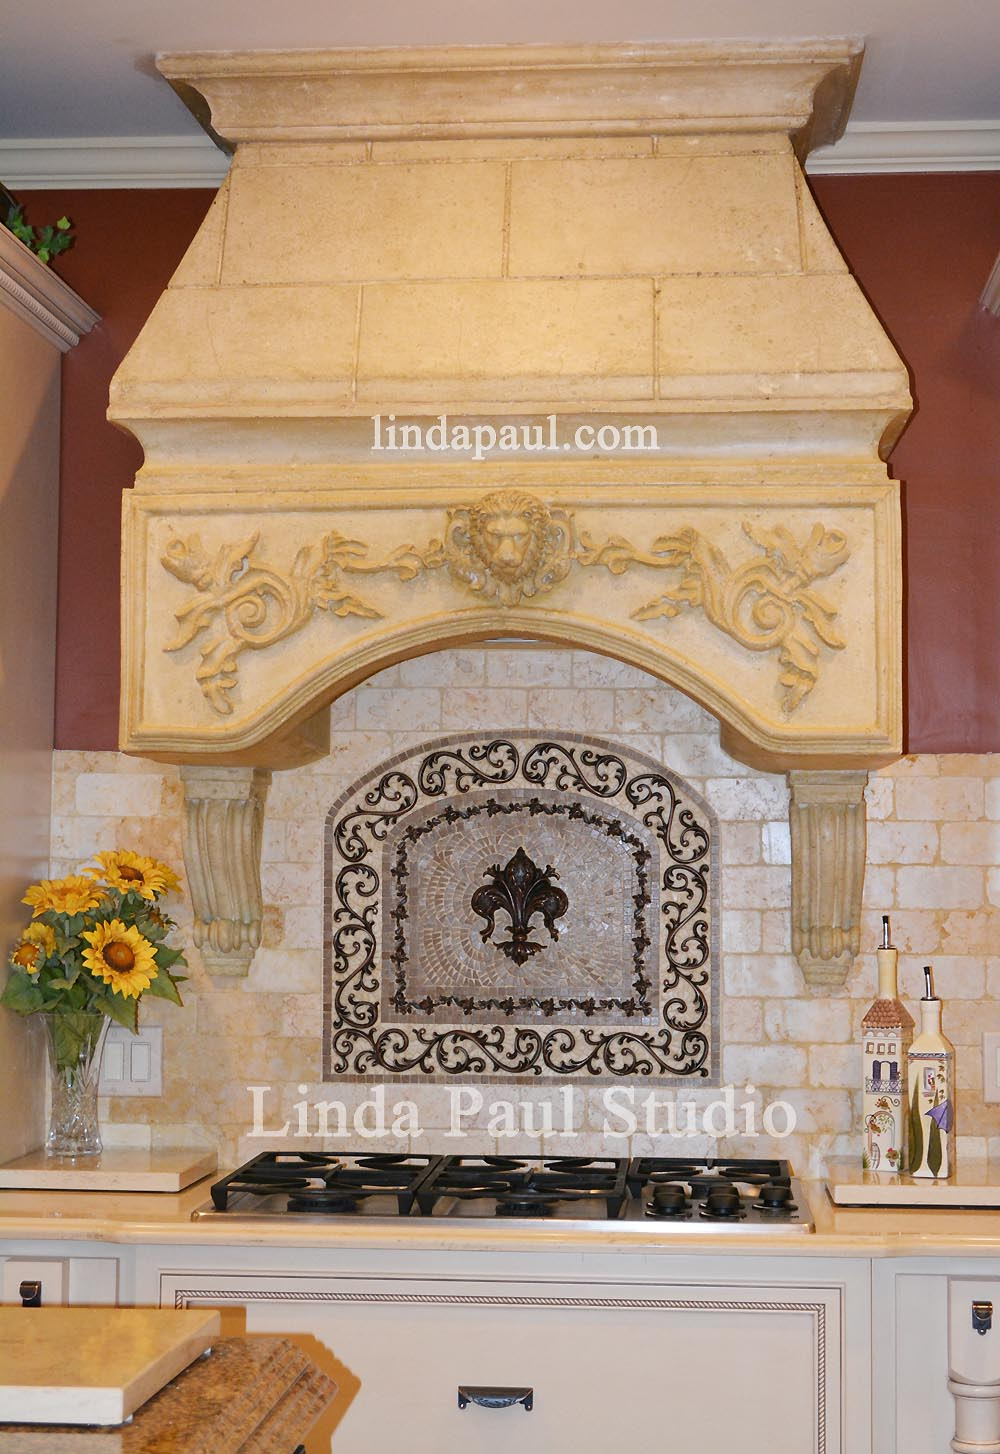 designer kitchen with celeste fleur de lis mosaic tile medallion CP AP S4 S5 Linda Paul Studio